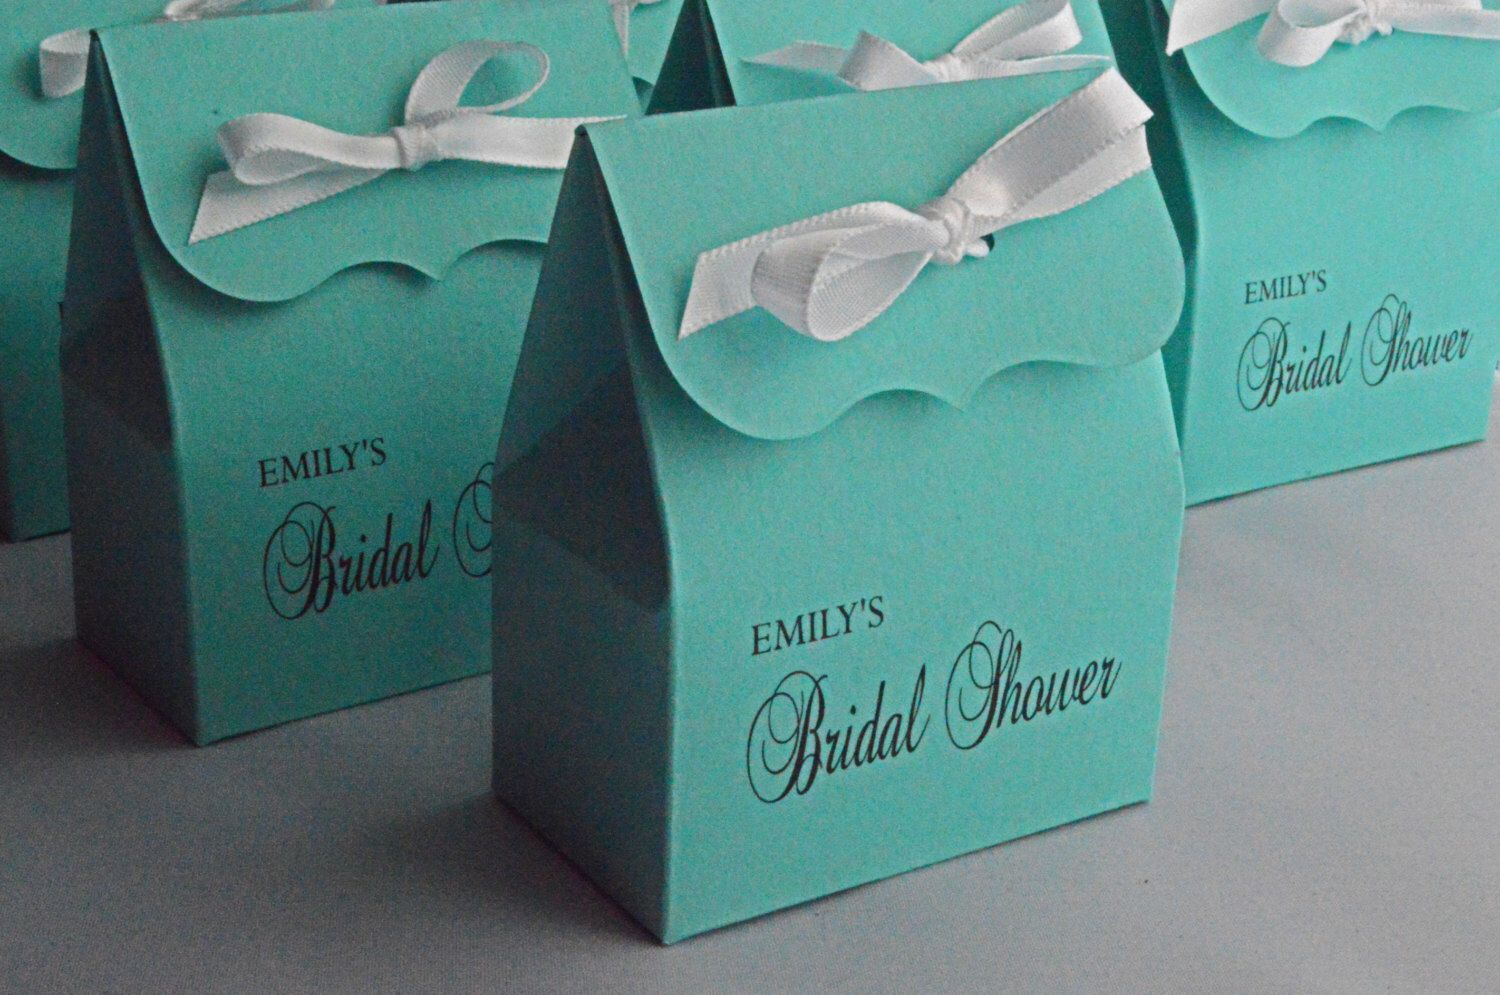 bridal shower favor bags in blue with white ribbon by sosiatogo on etsy https